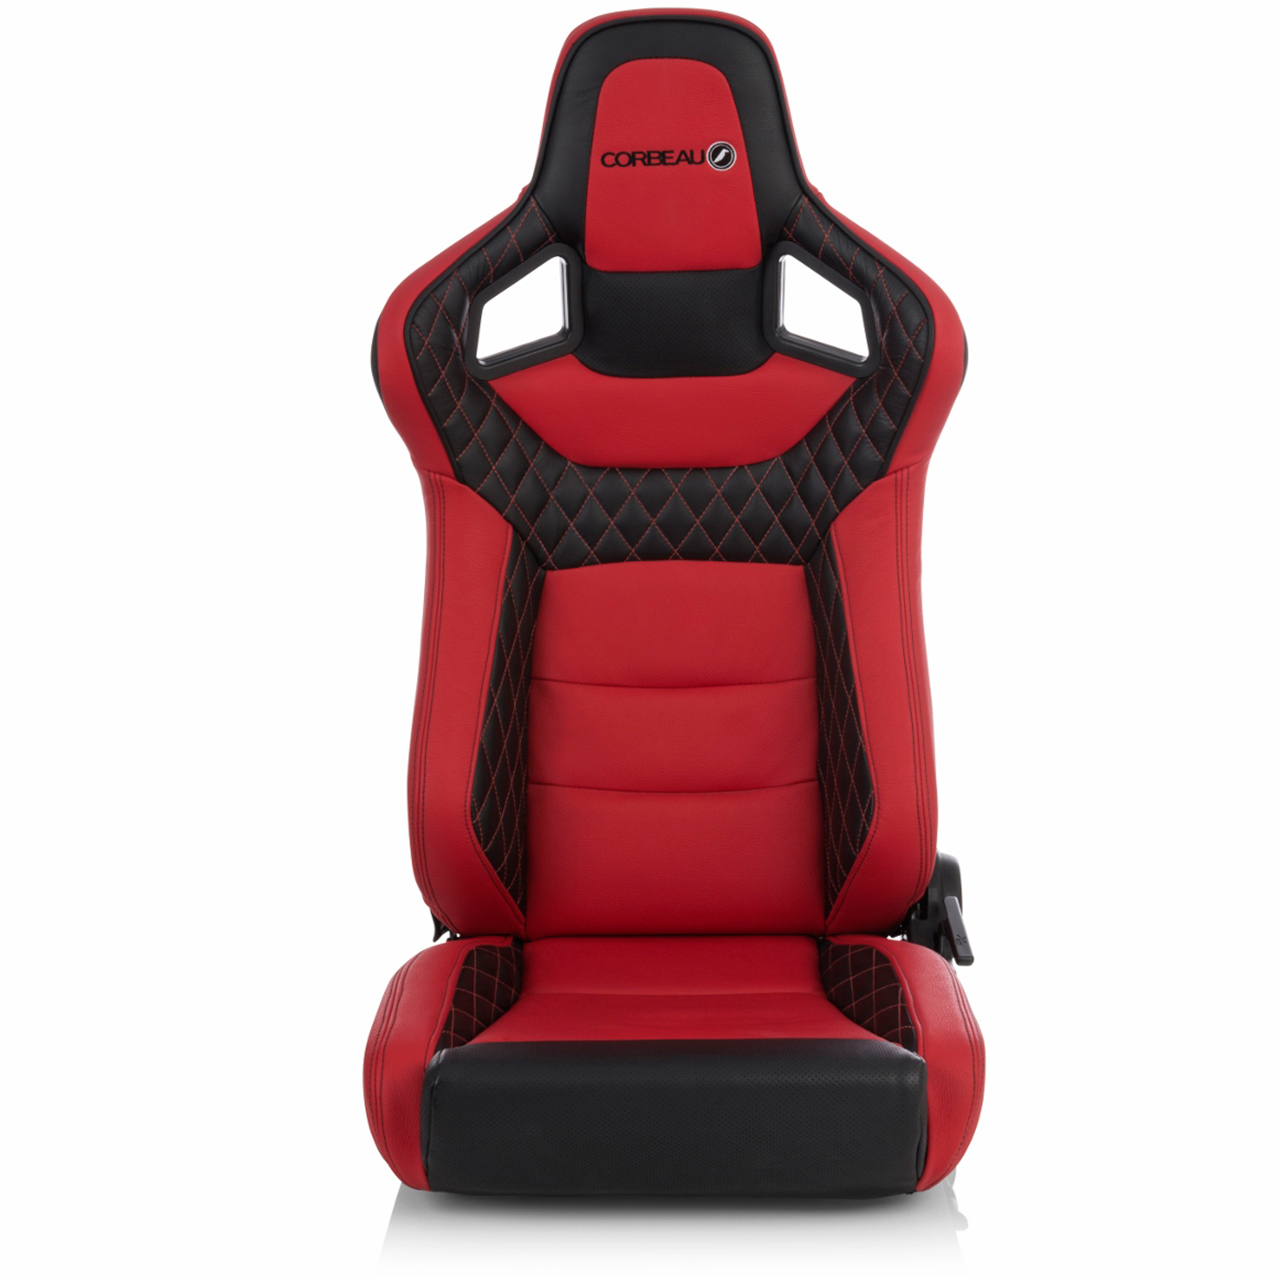 Corbeau Sportline RRS Low Base Reclining Bucket Seat in Red and Black Custom Elite Upgrade